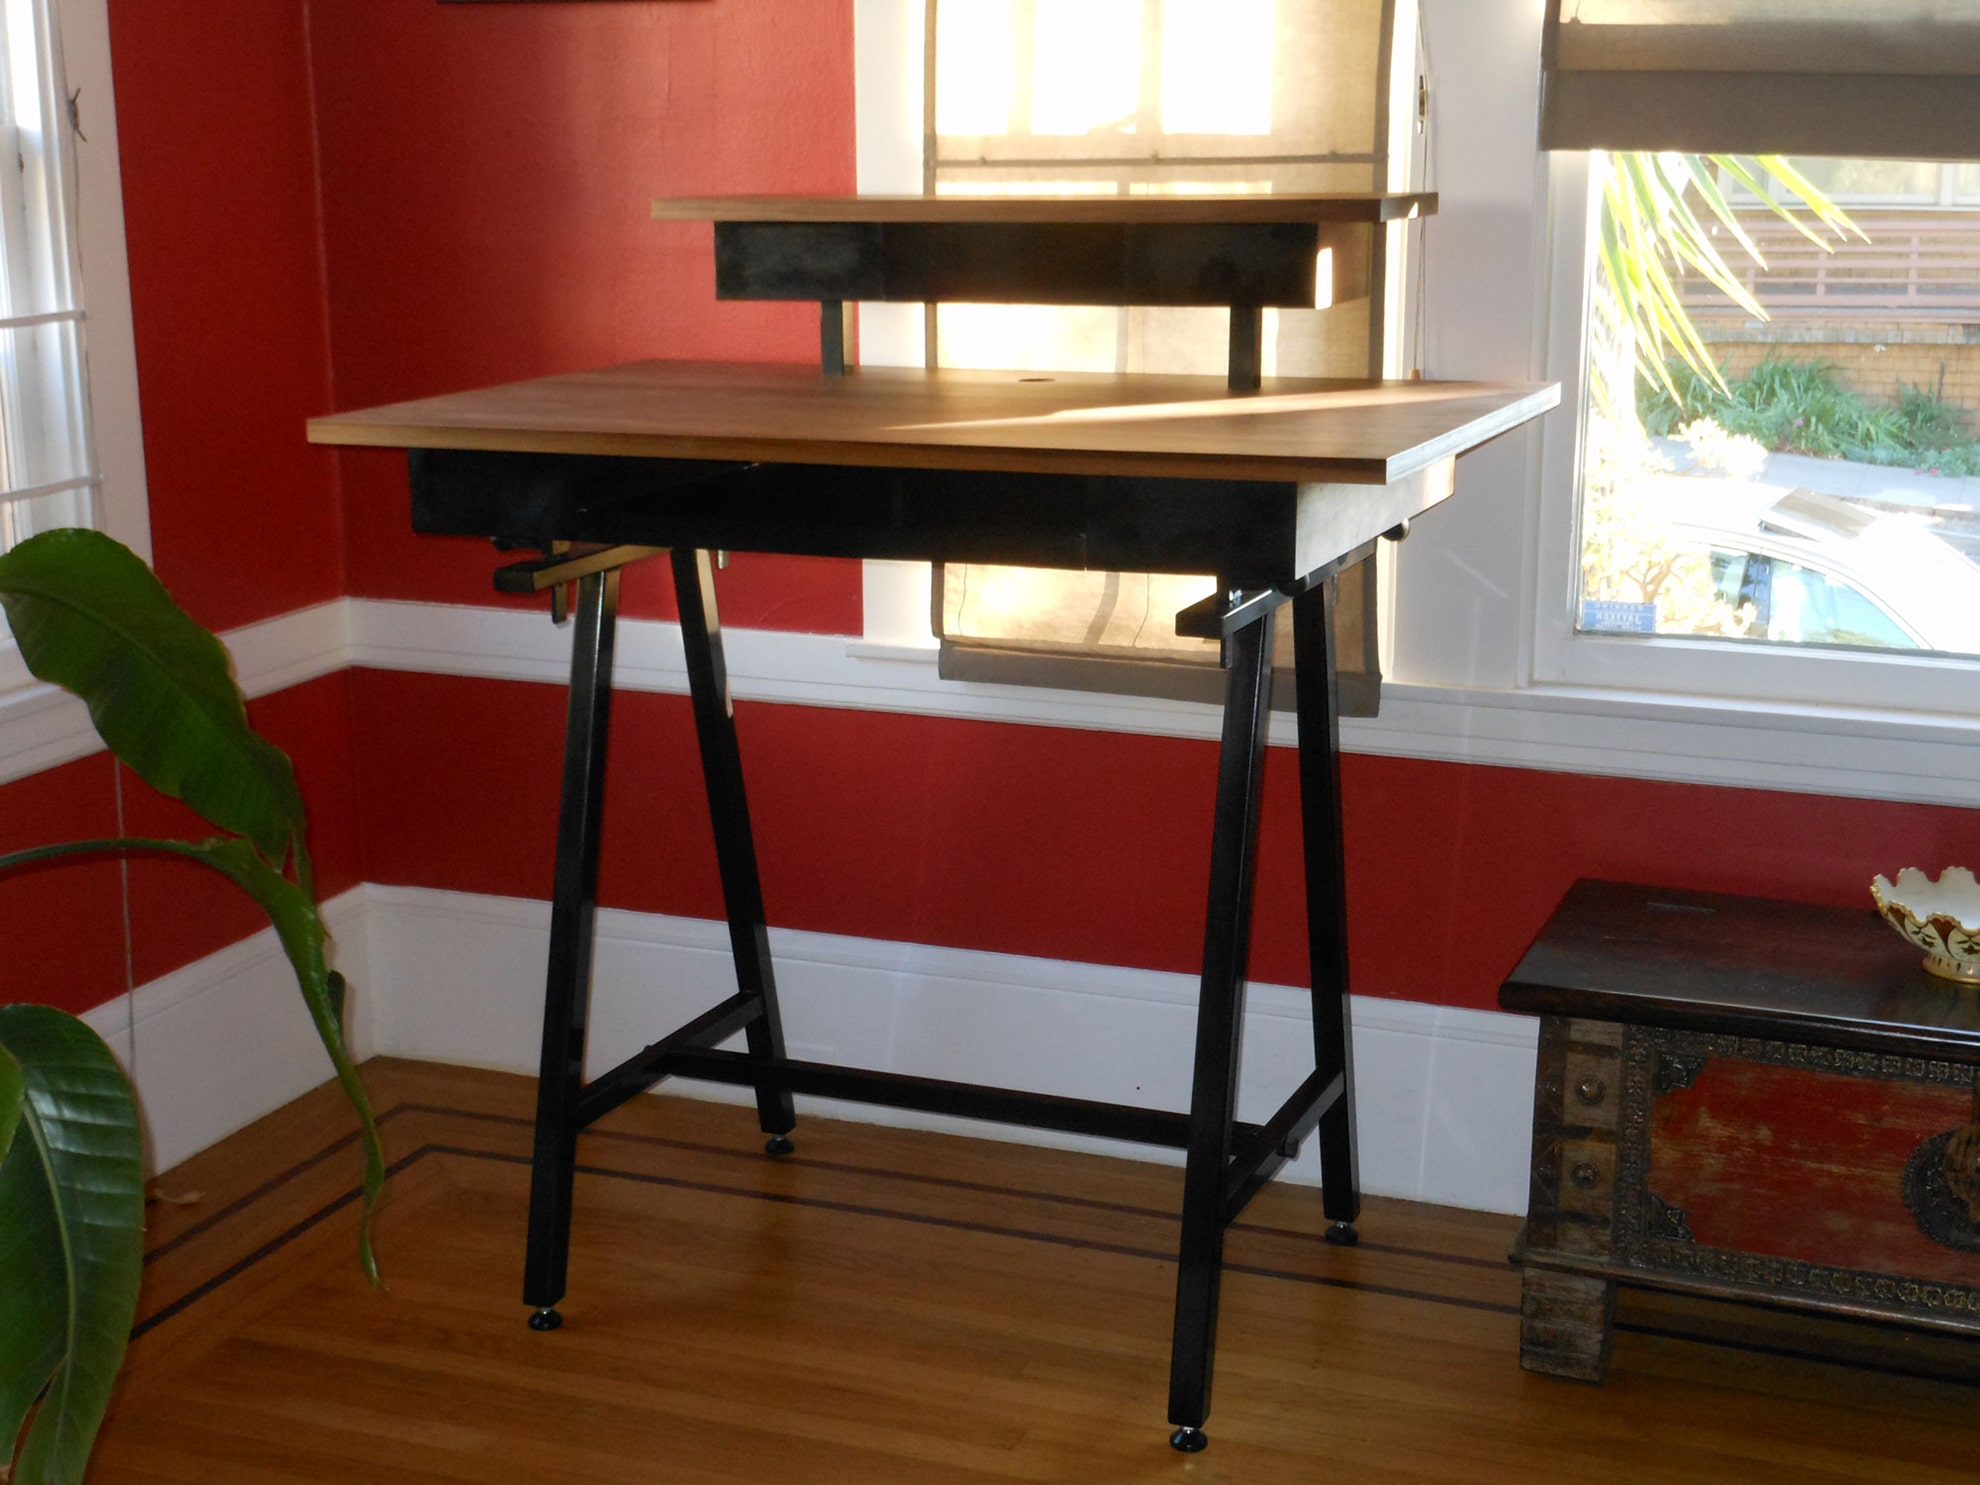 standing desk with two tiers, front view